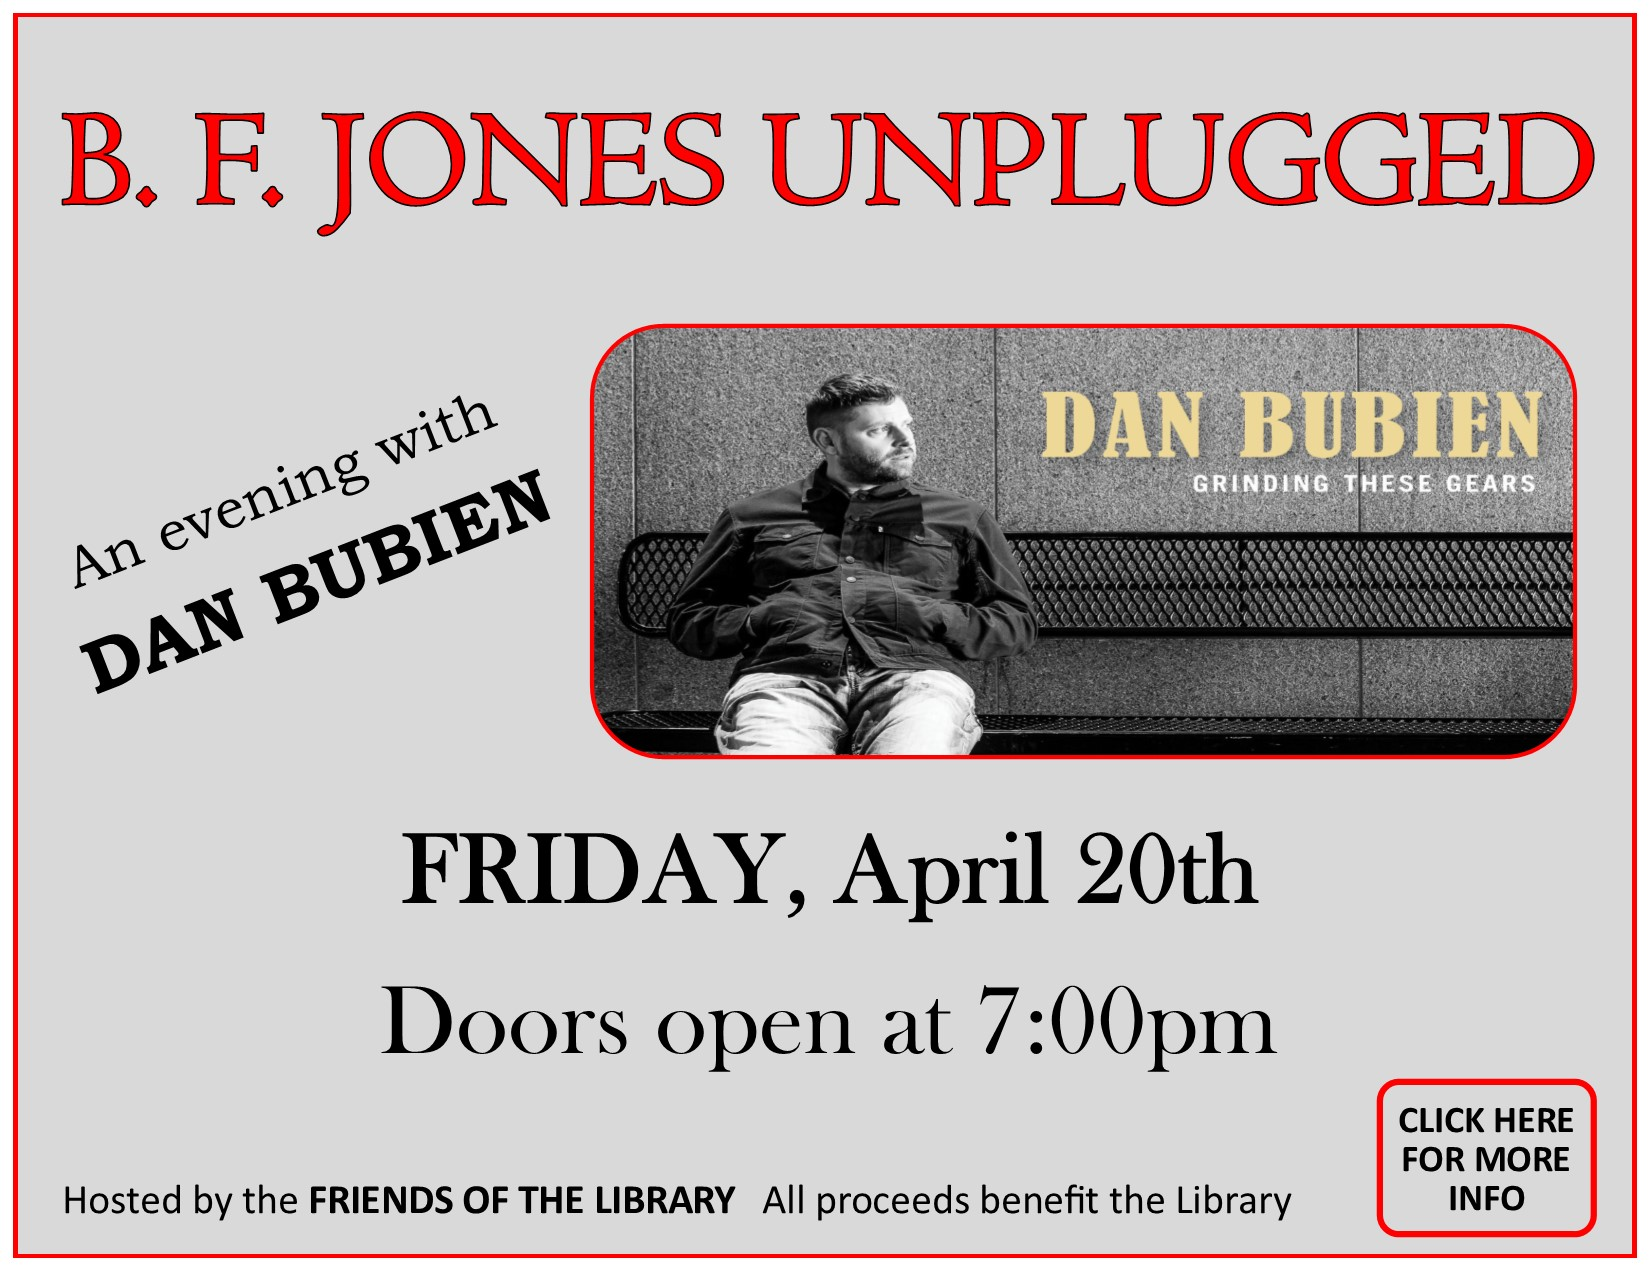 Library Unplugged 2018